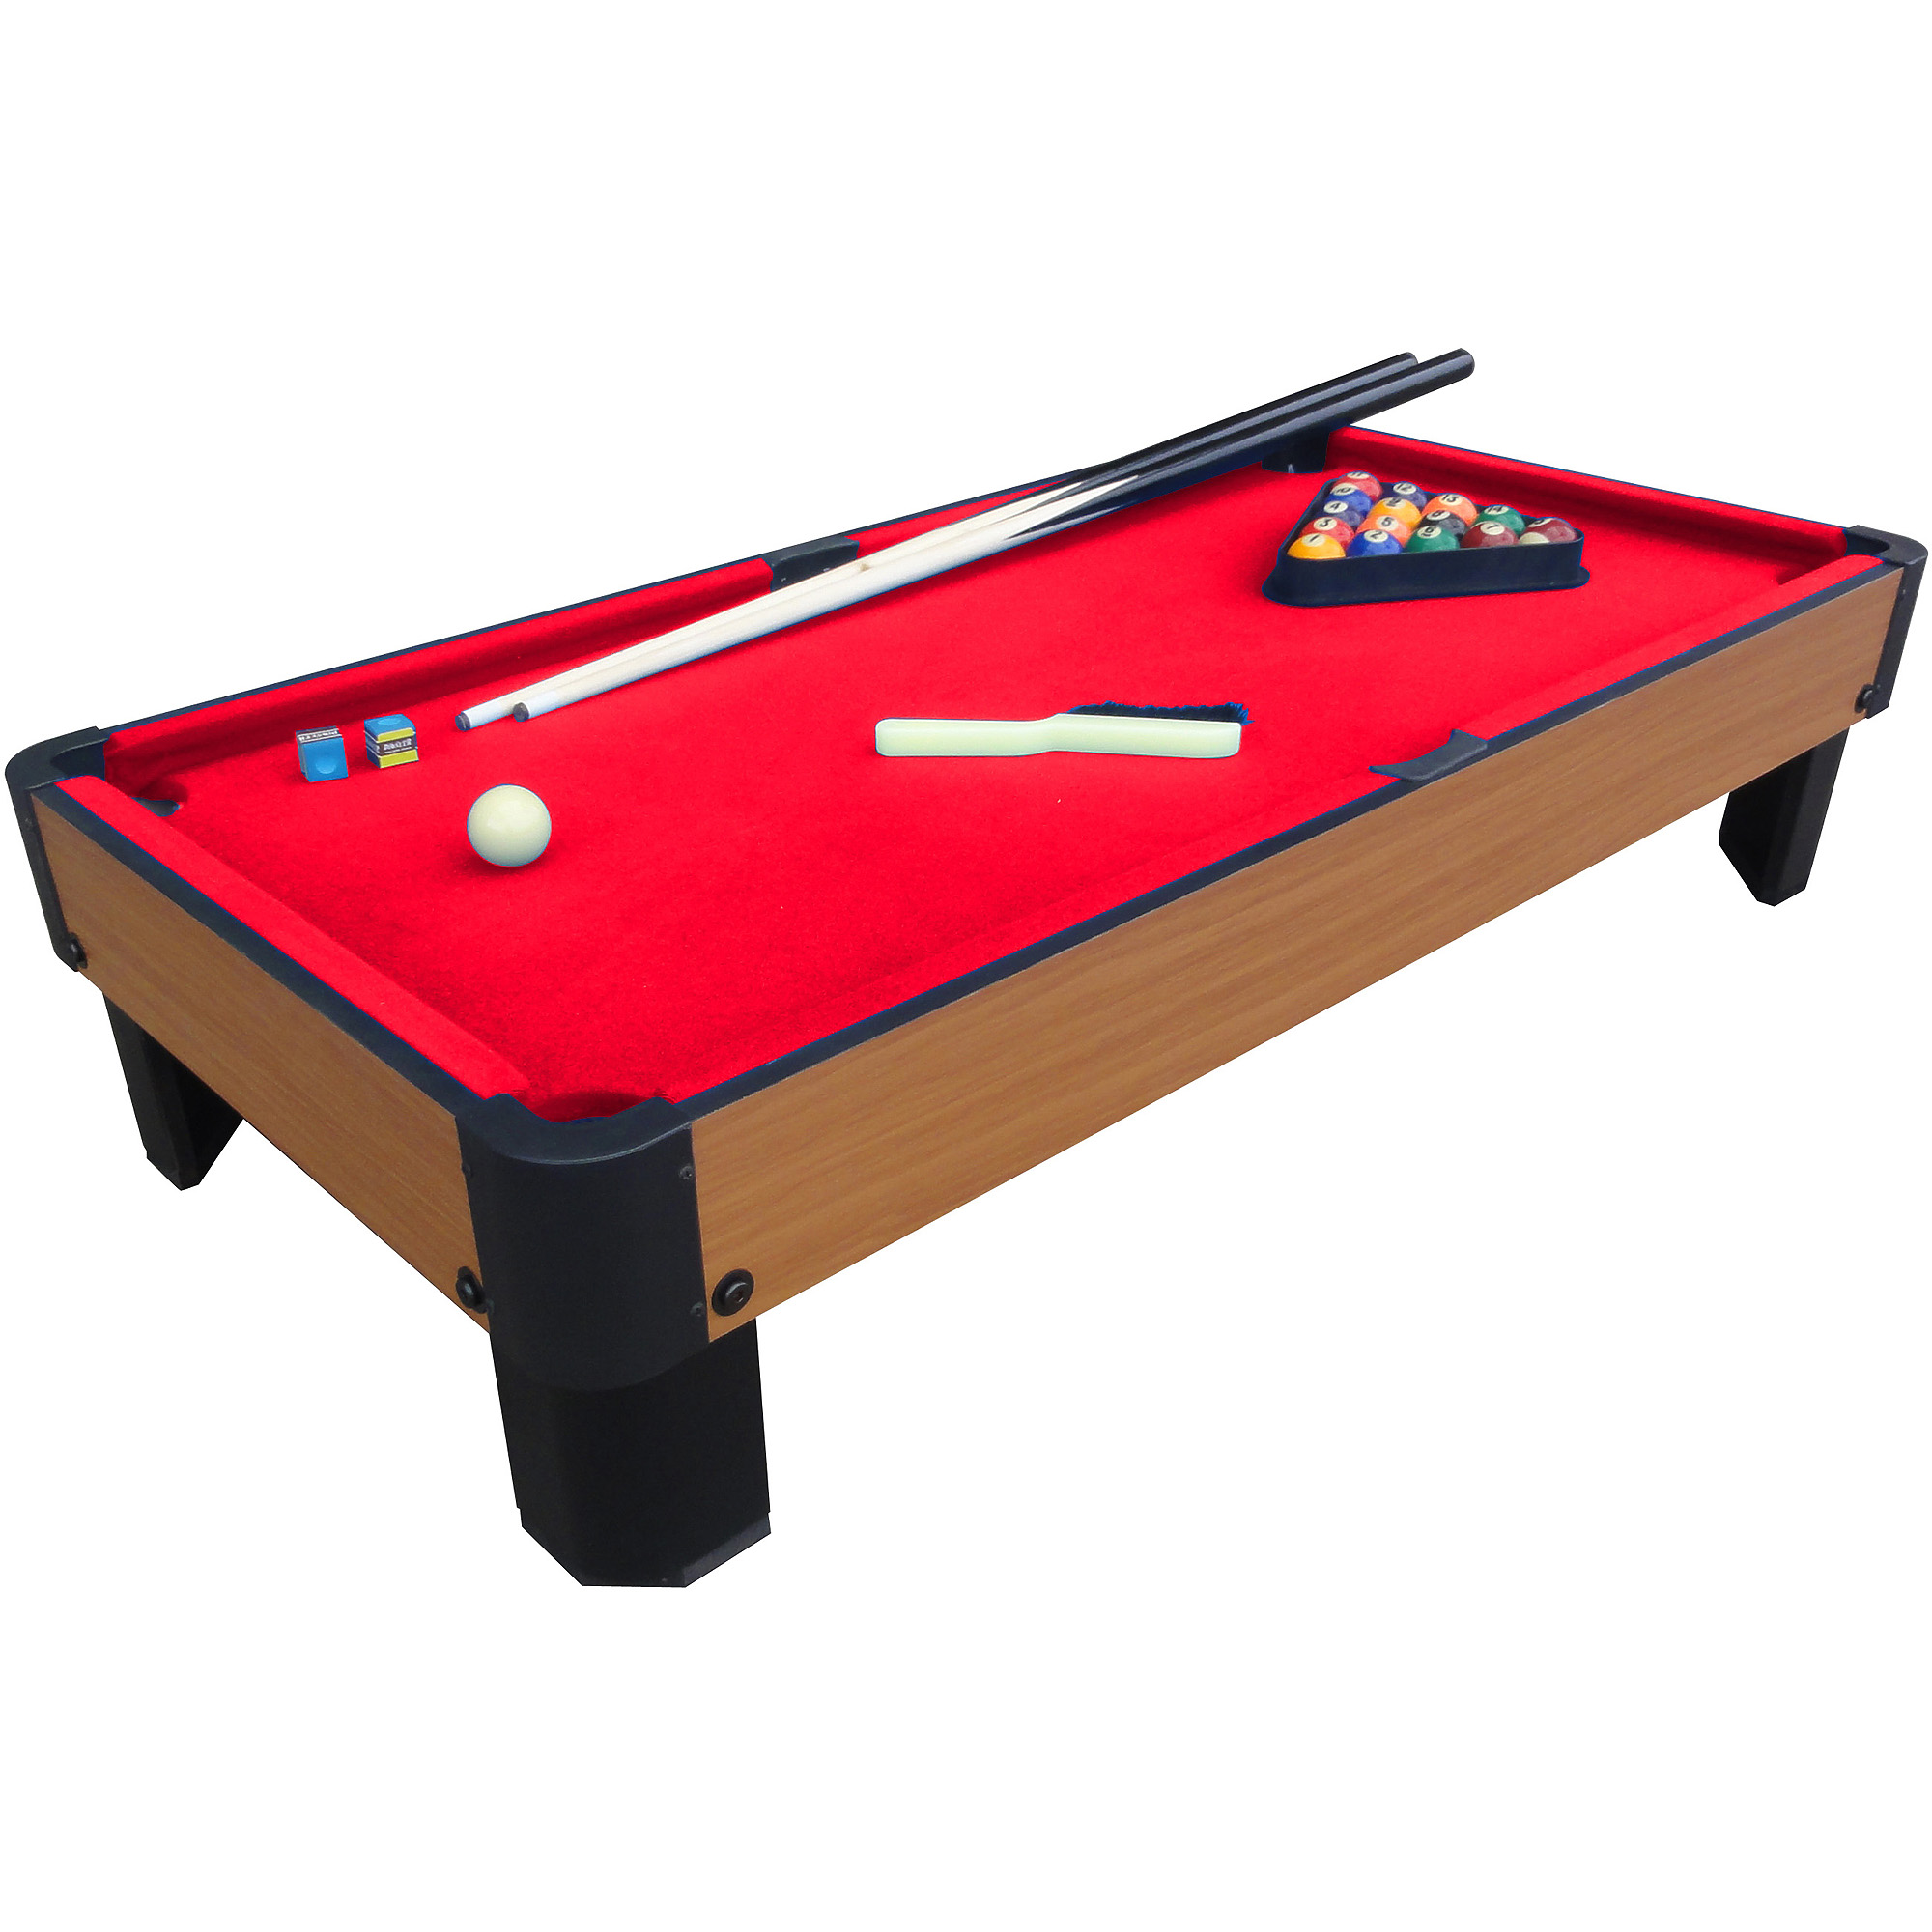 "Playcraft Sport Bank Shot 40"" Pool Table with Red Cloth by Playcraft Sport"